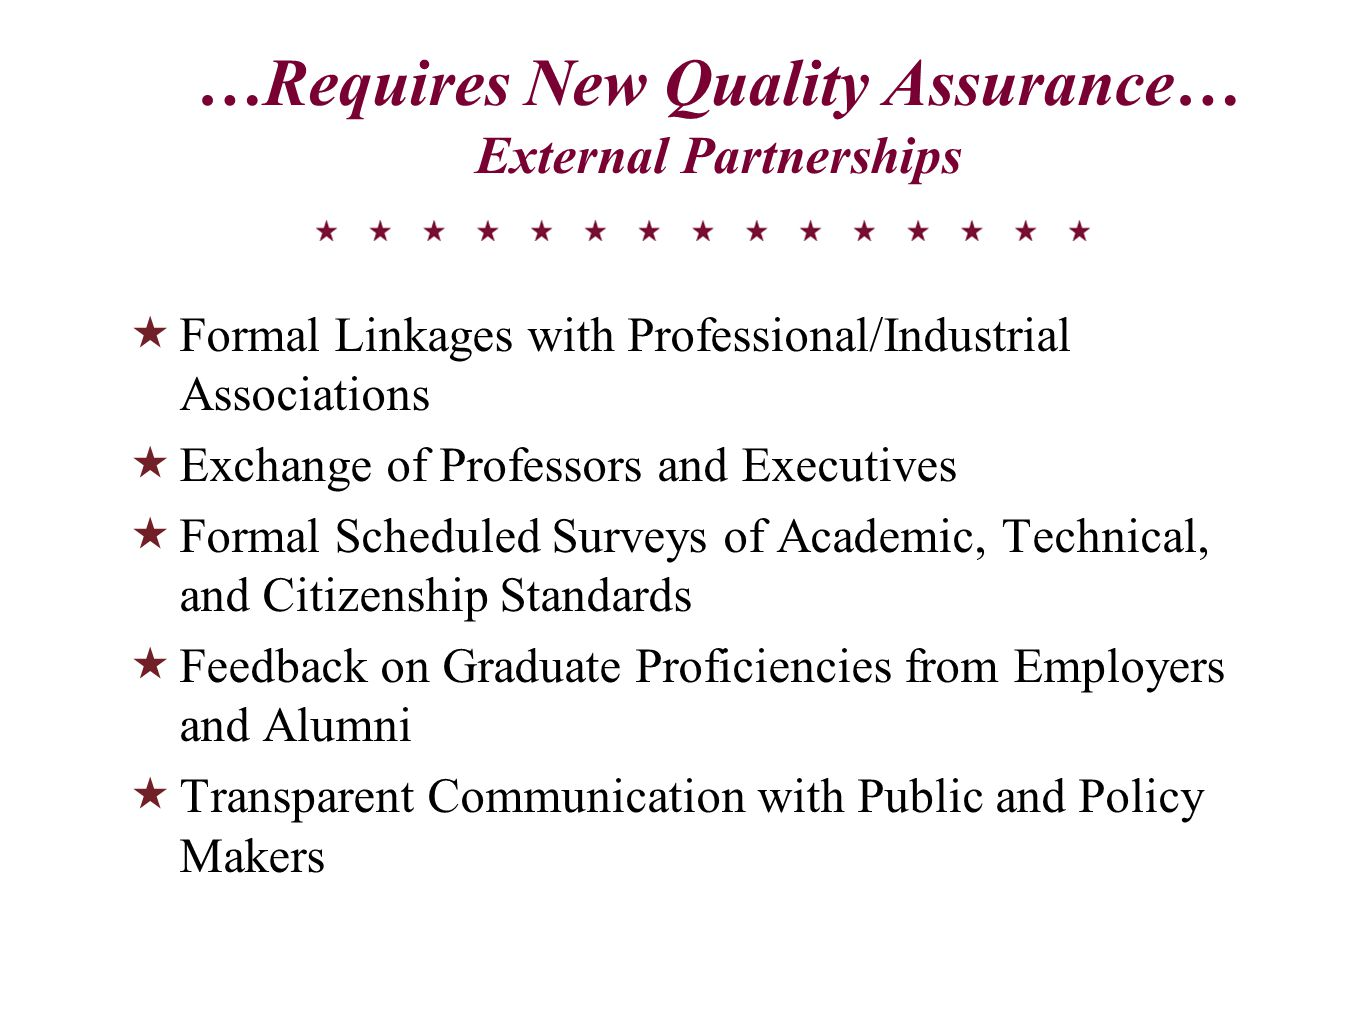 …Requires New Quality Assurance… External Partnerships  Formal Linkages with Professional/Industrial Associations  Exchange of Professors and Executives  Formal Scheduled Surveys of Academic, Technical, and Citizenship Standards  Feedback on Graduate Proficiencies from Employers and Alumni  Transparent Communication with Public and Policy Makers